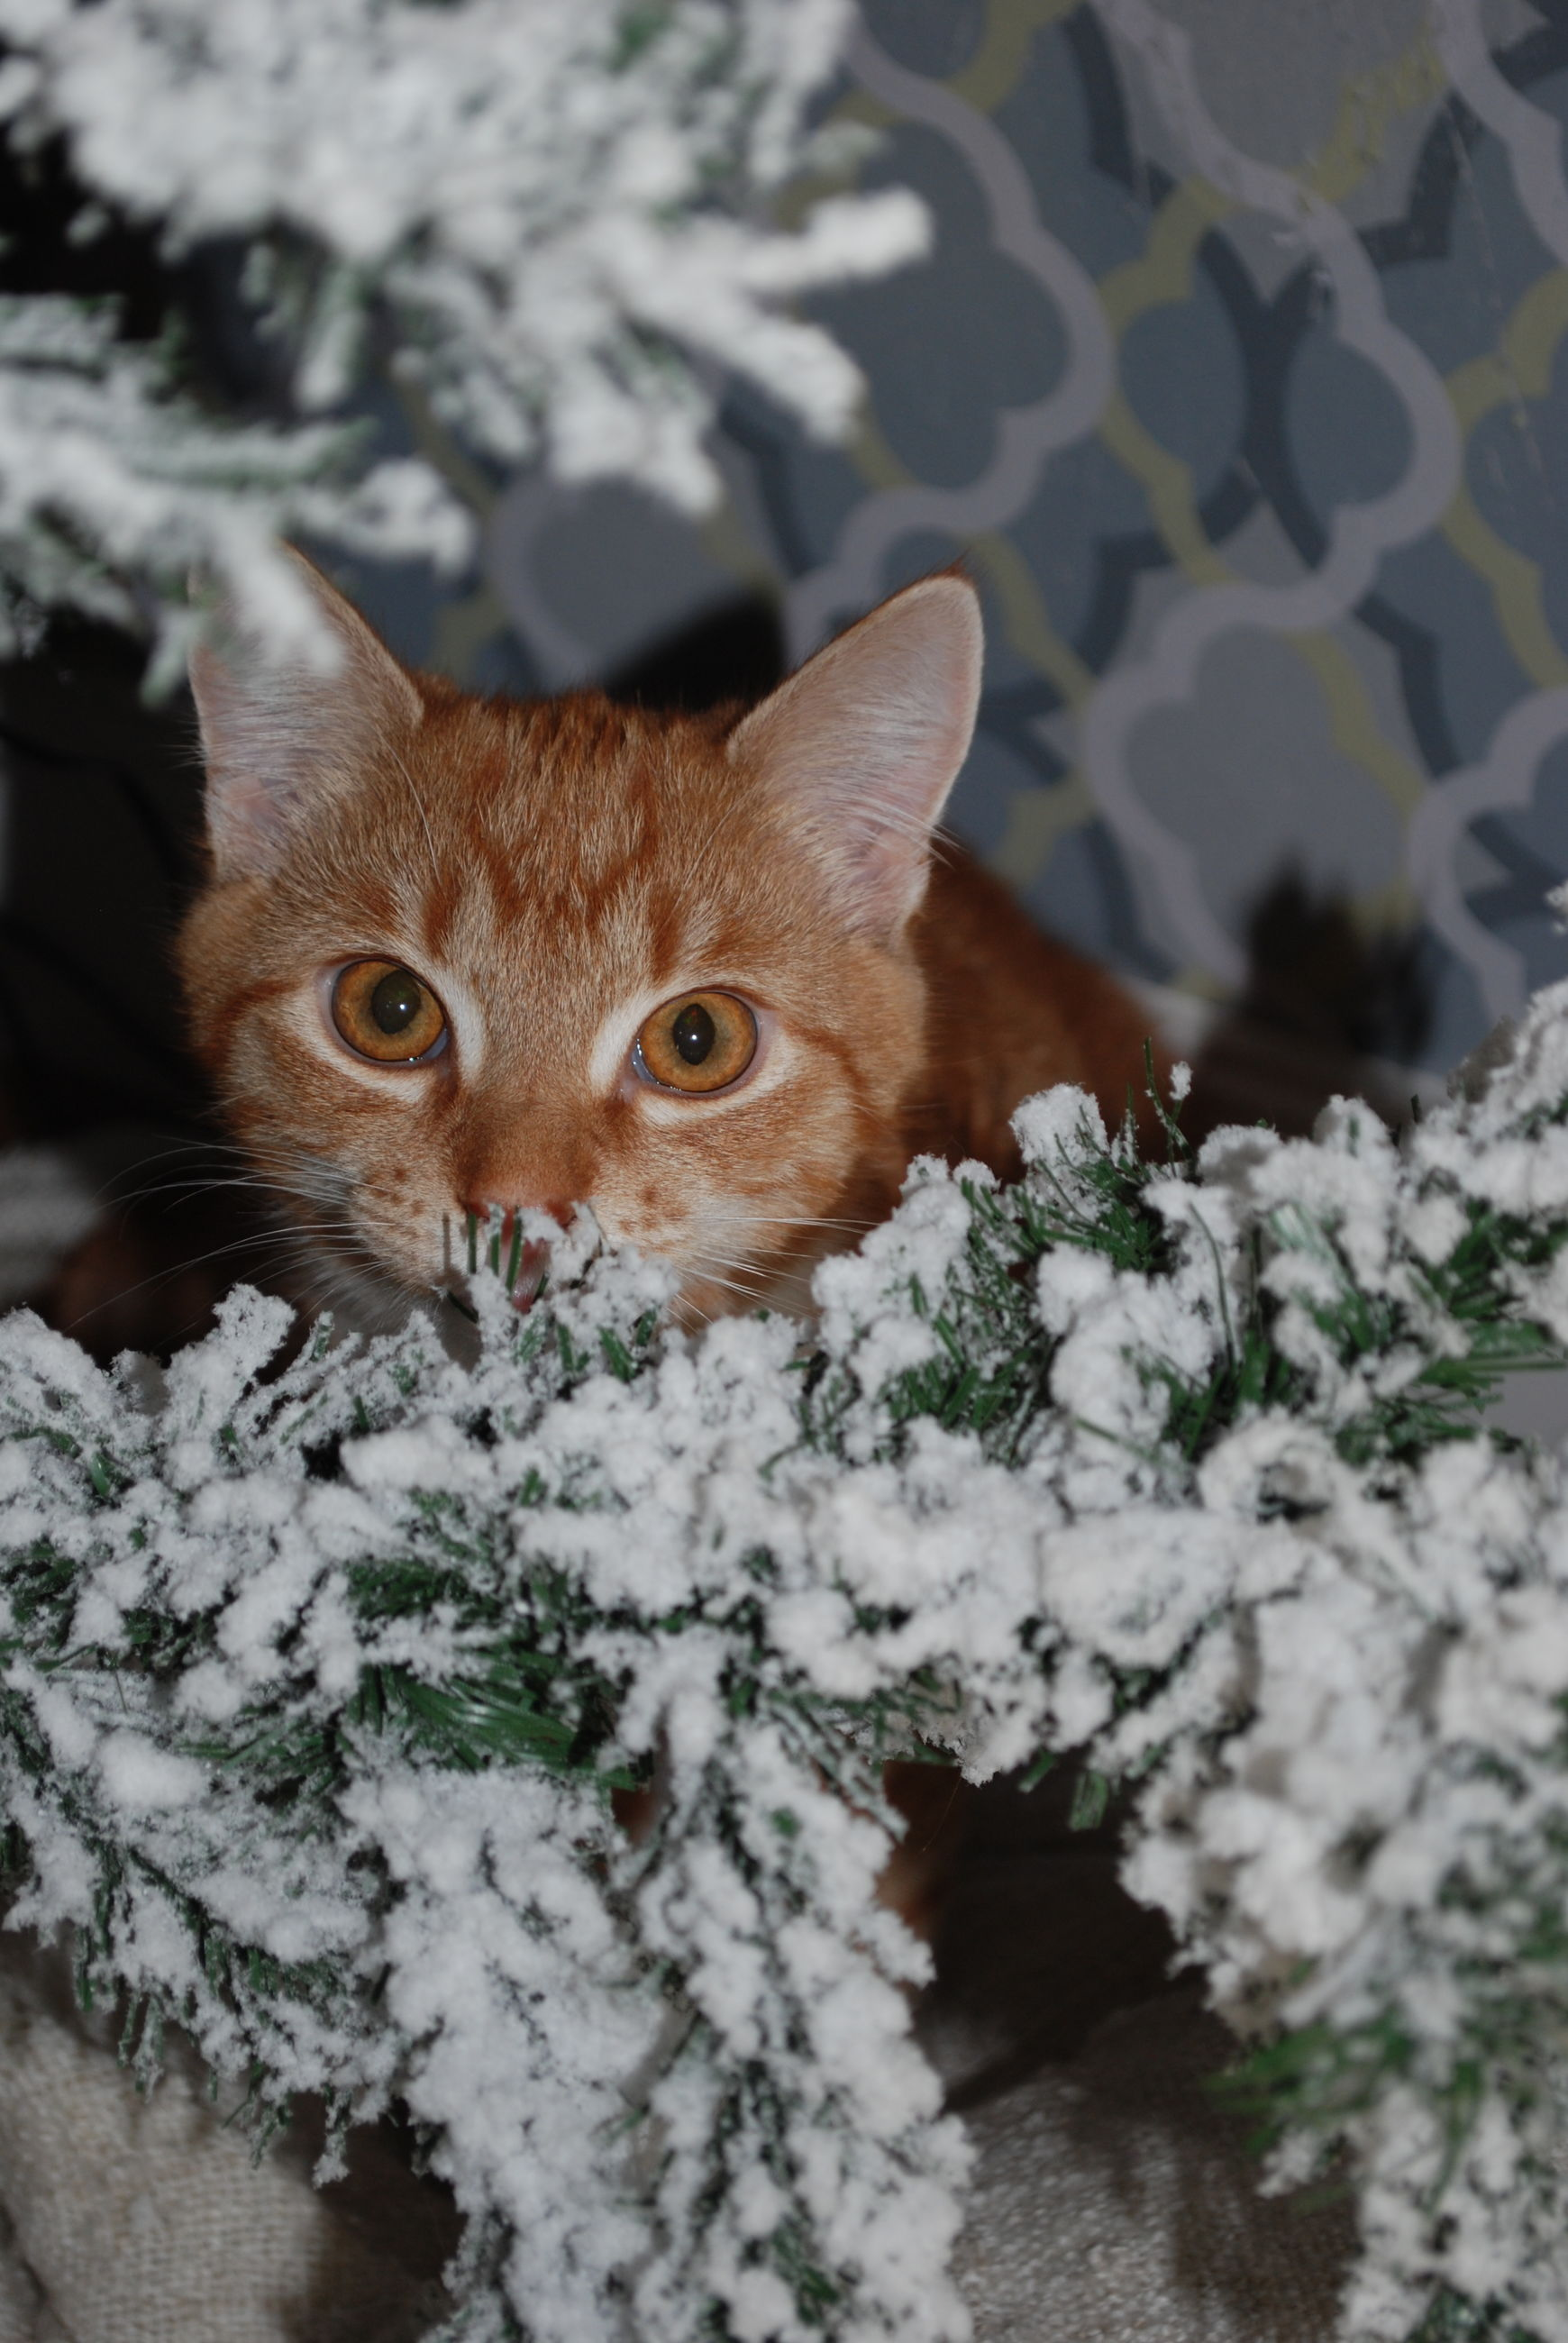 animal themes, one animal, flower, white color, nature, winter, plant, mammal, snow, focus on foreground, close-up, domestic cat, growth, cold temperature, domestic animals, high angle view, cat, season, outdoors, day